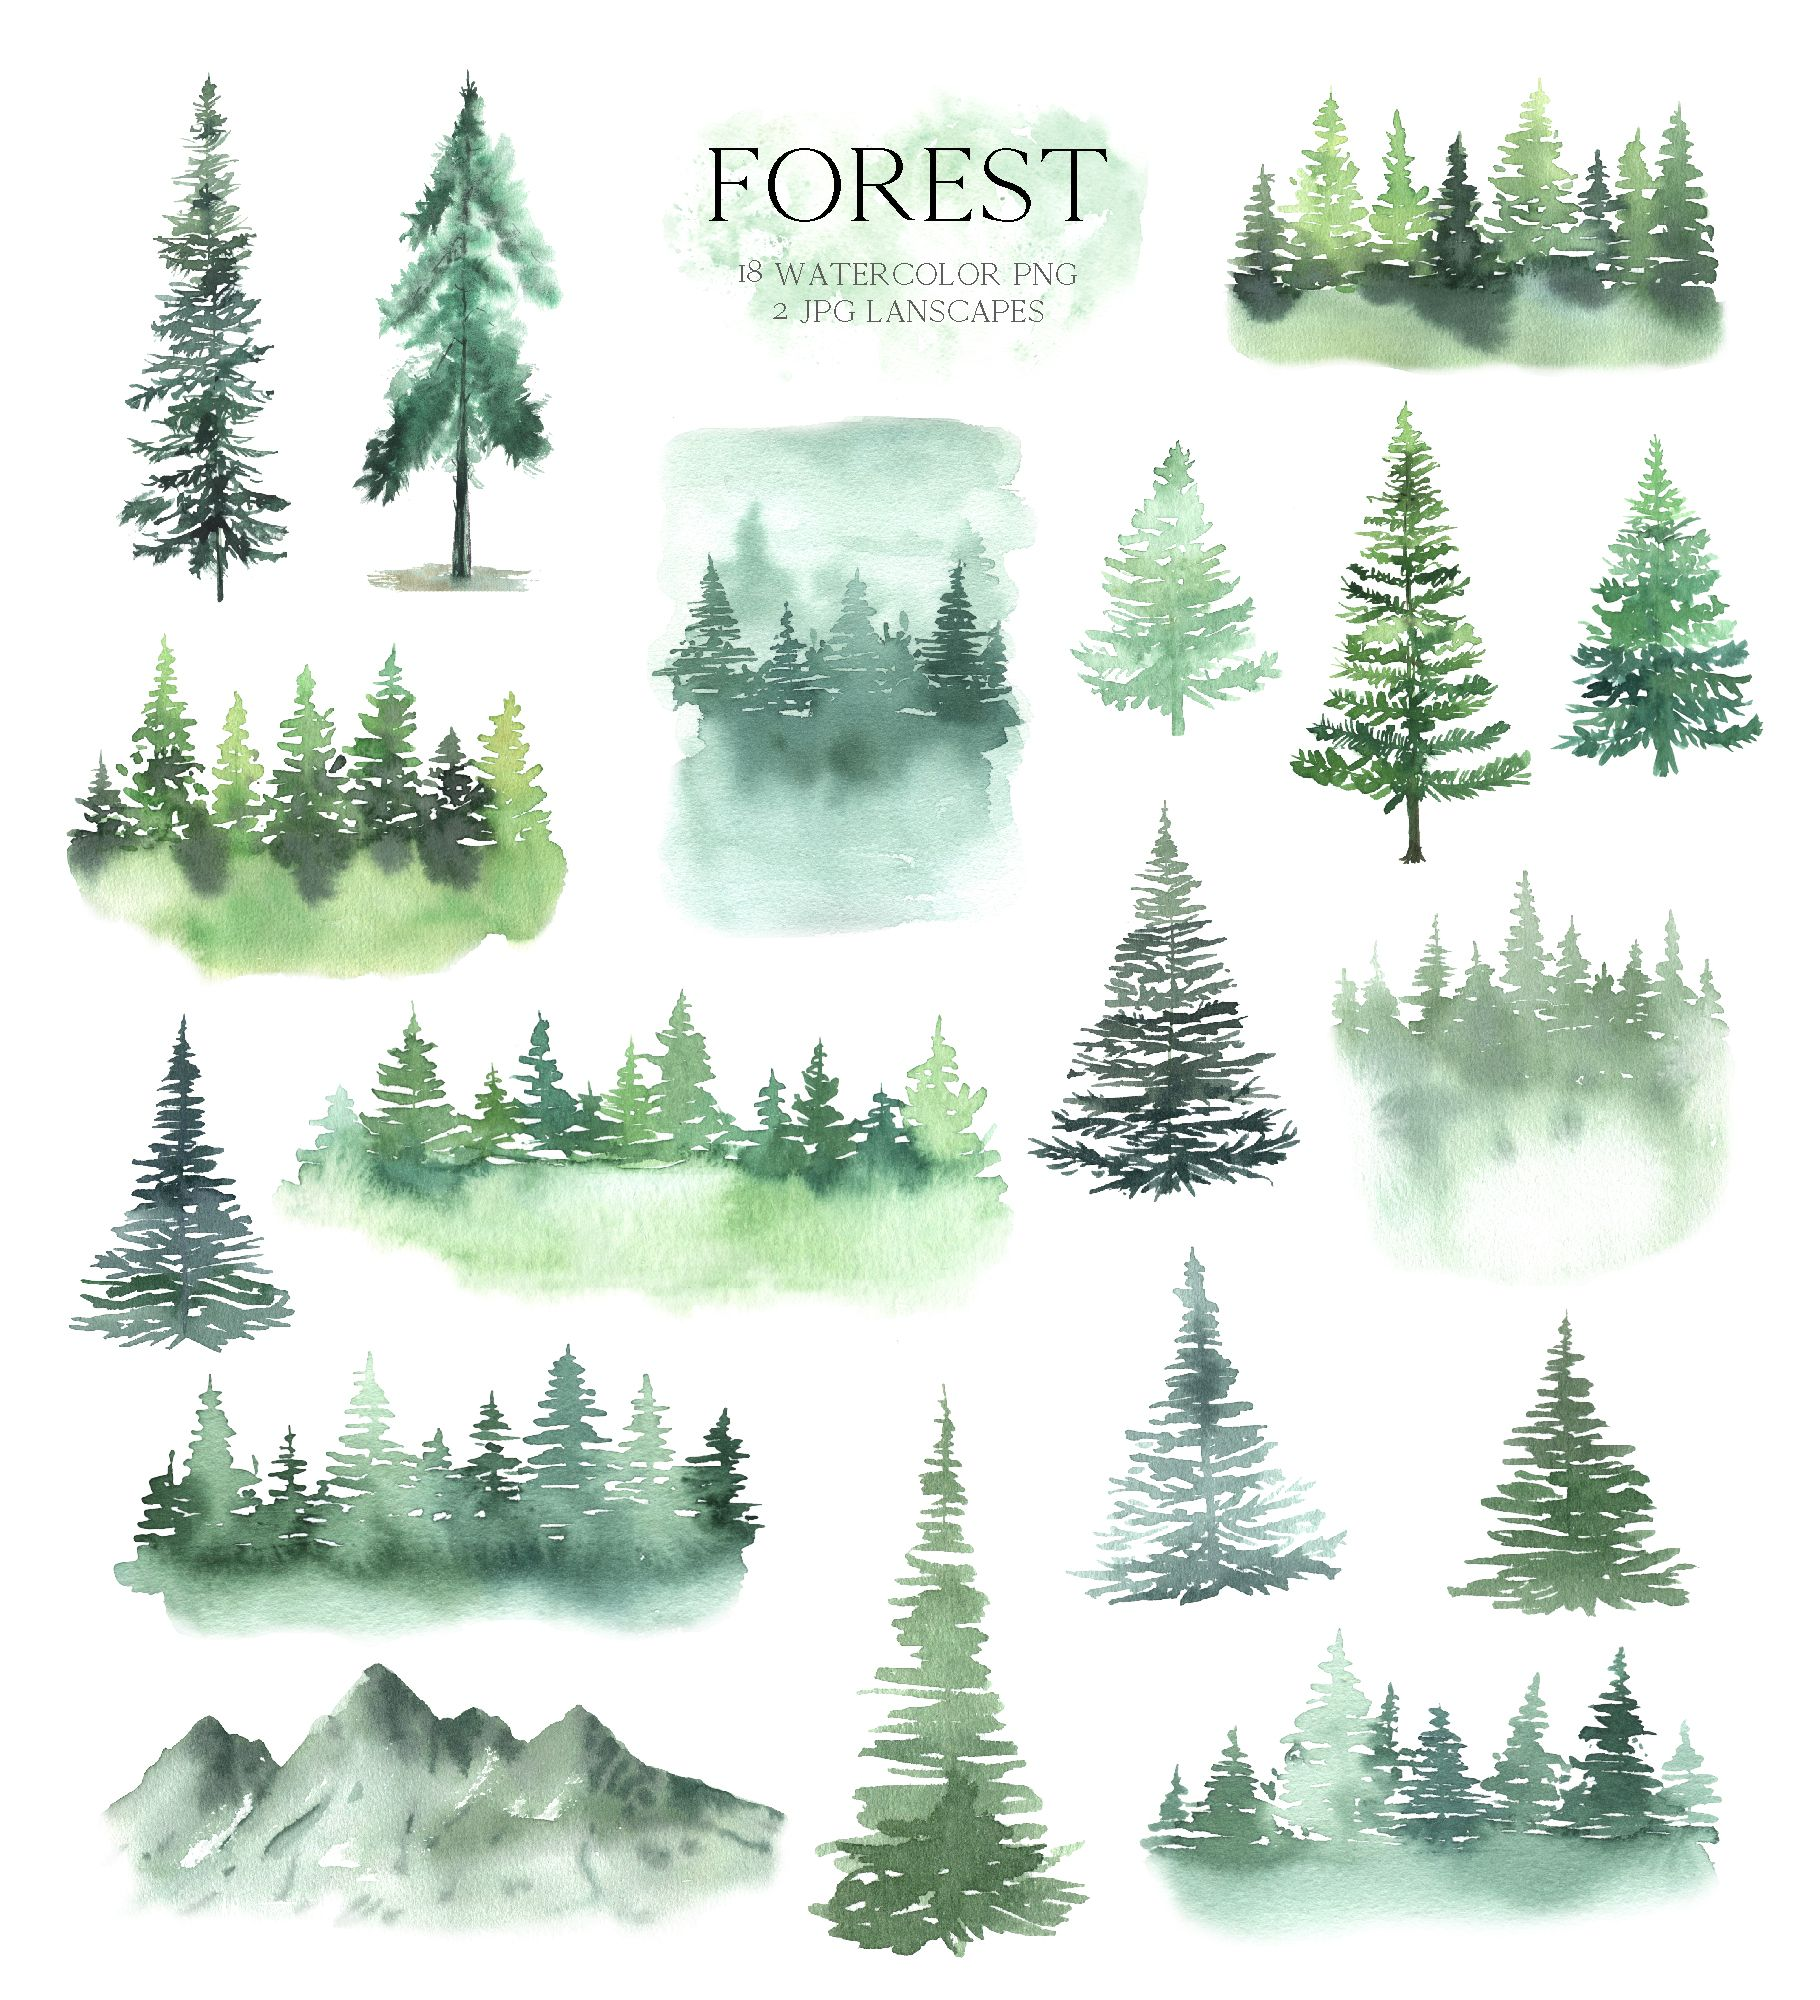 watercolor forest tree clipart woodland pine trees landscapes mountain digital clip art wedding invitation scrapbooking set png 327 in 2020 tree clipart landscape clipart watercolor trees pinterest